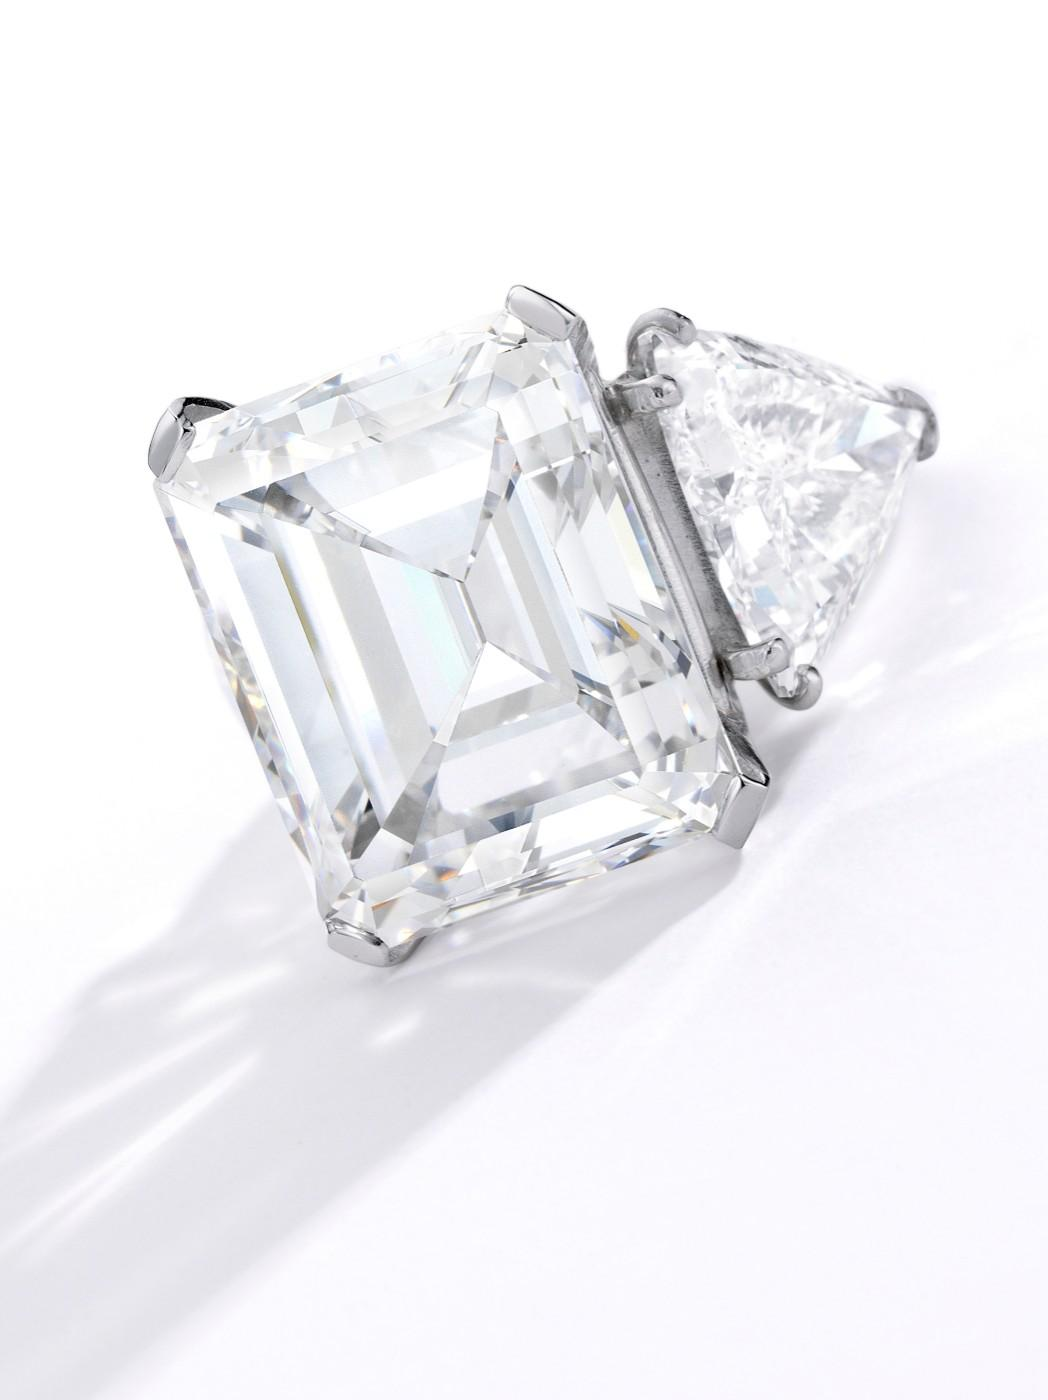 Barbara Sinatra's Diamond Engagement Ring